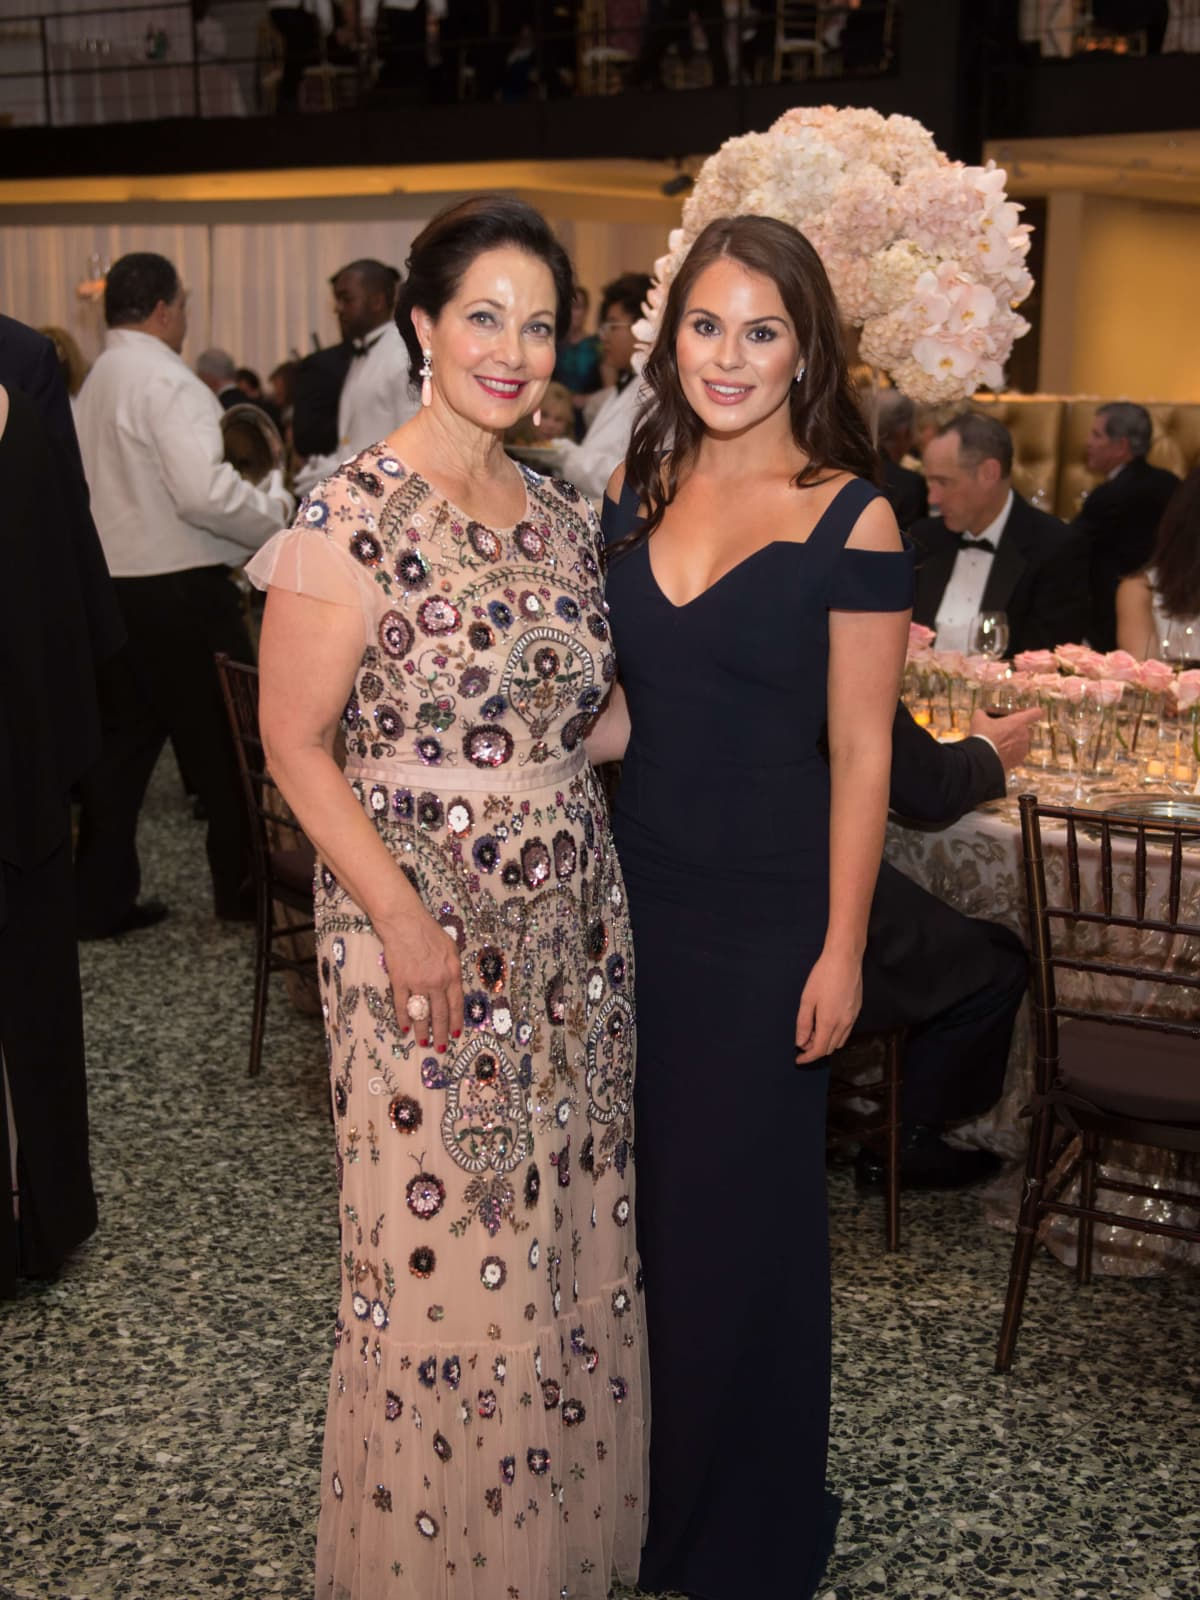 Karol Barnhart, Meredith Flores at Museum of Fine Arts Grand Gala Ball